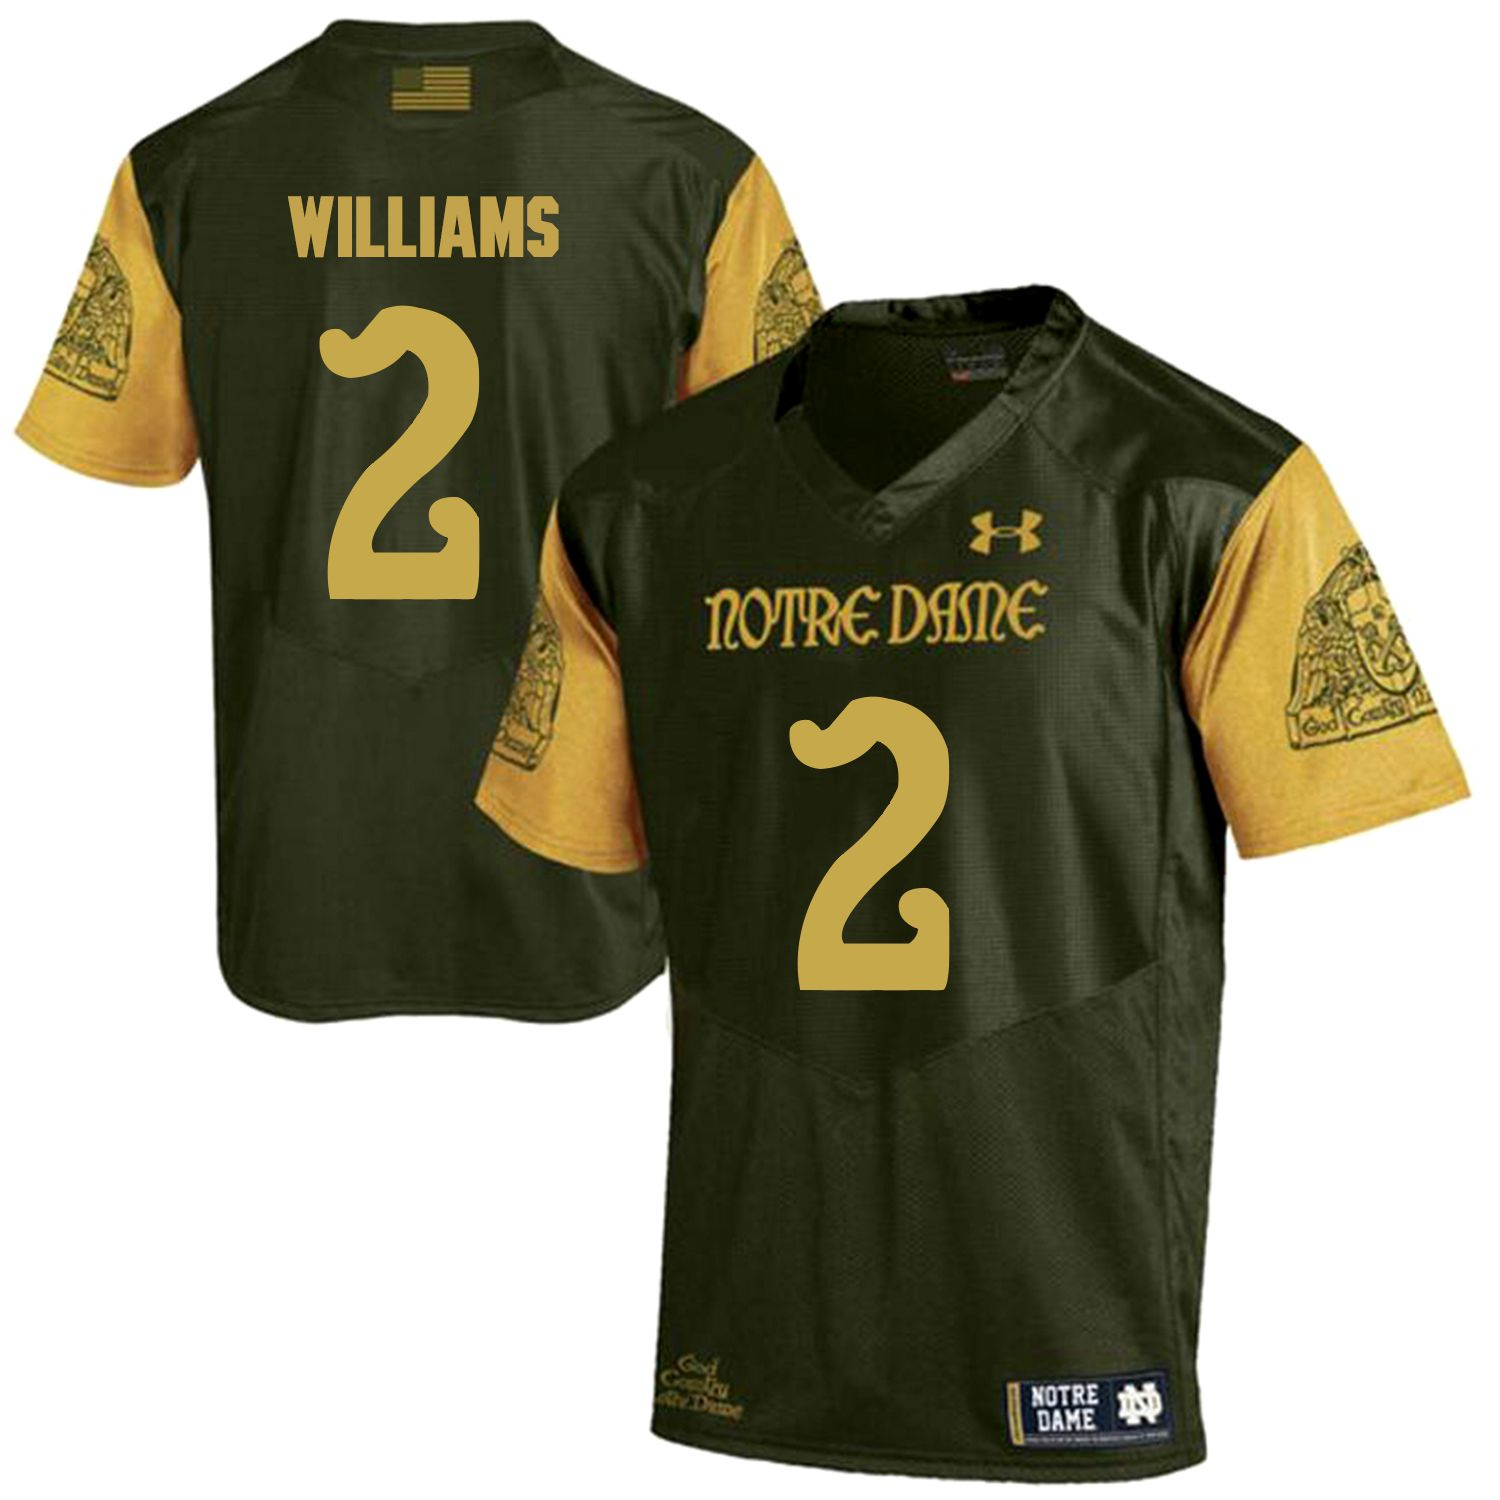 Men Norte Dame Fighting Irish 2 Williams Green Customized NCAA Jerseys